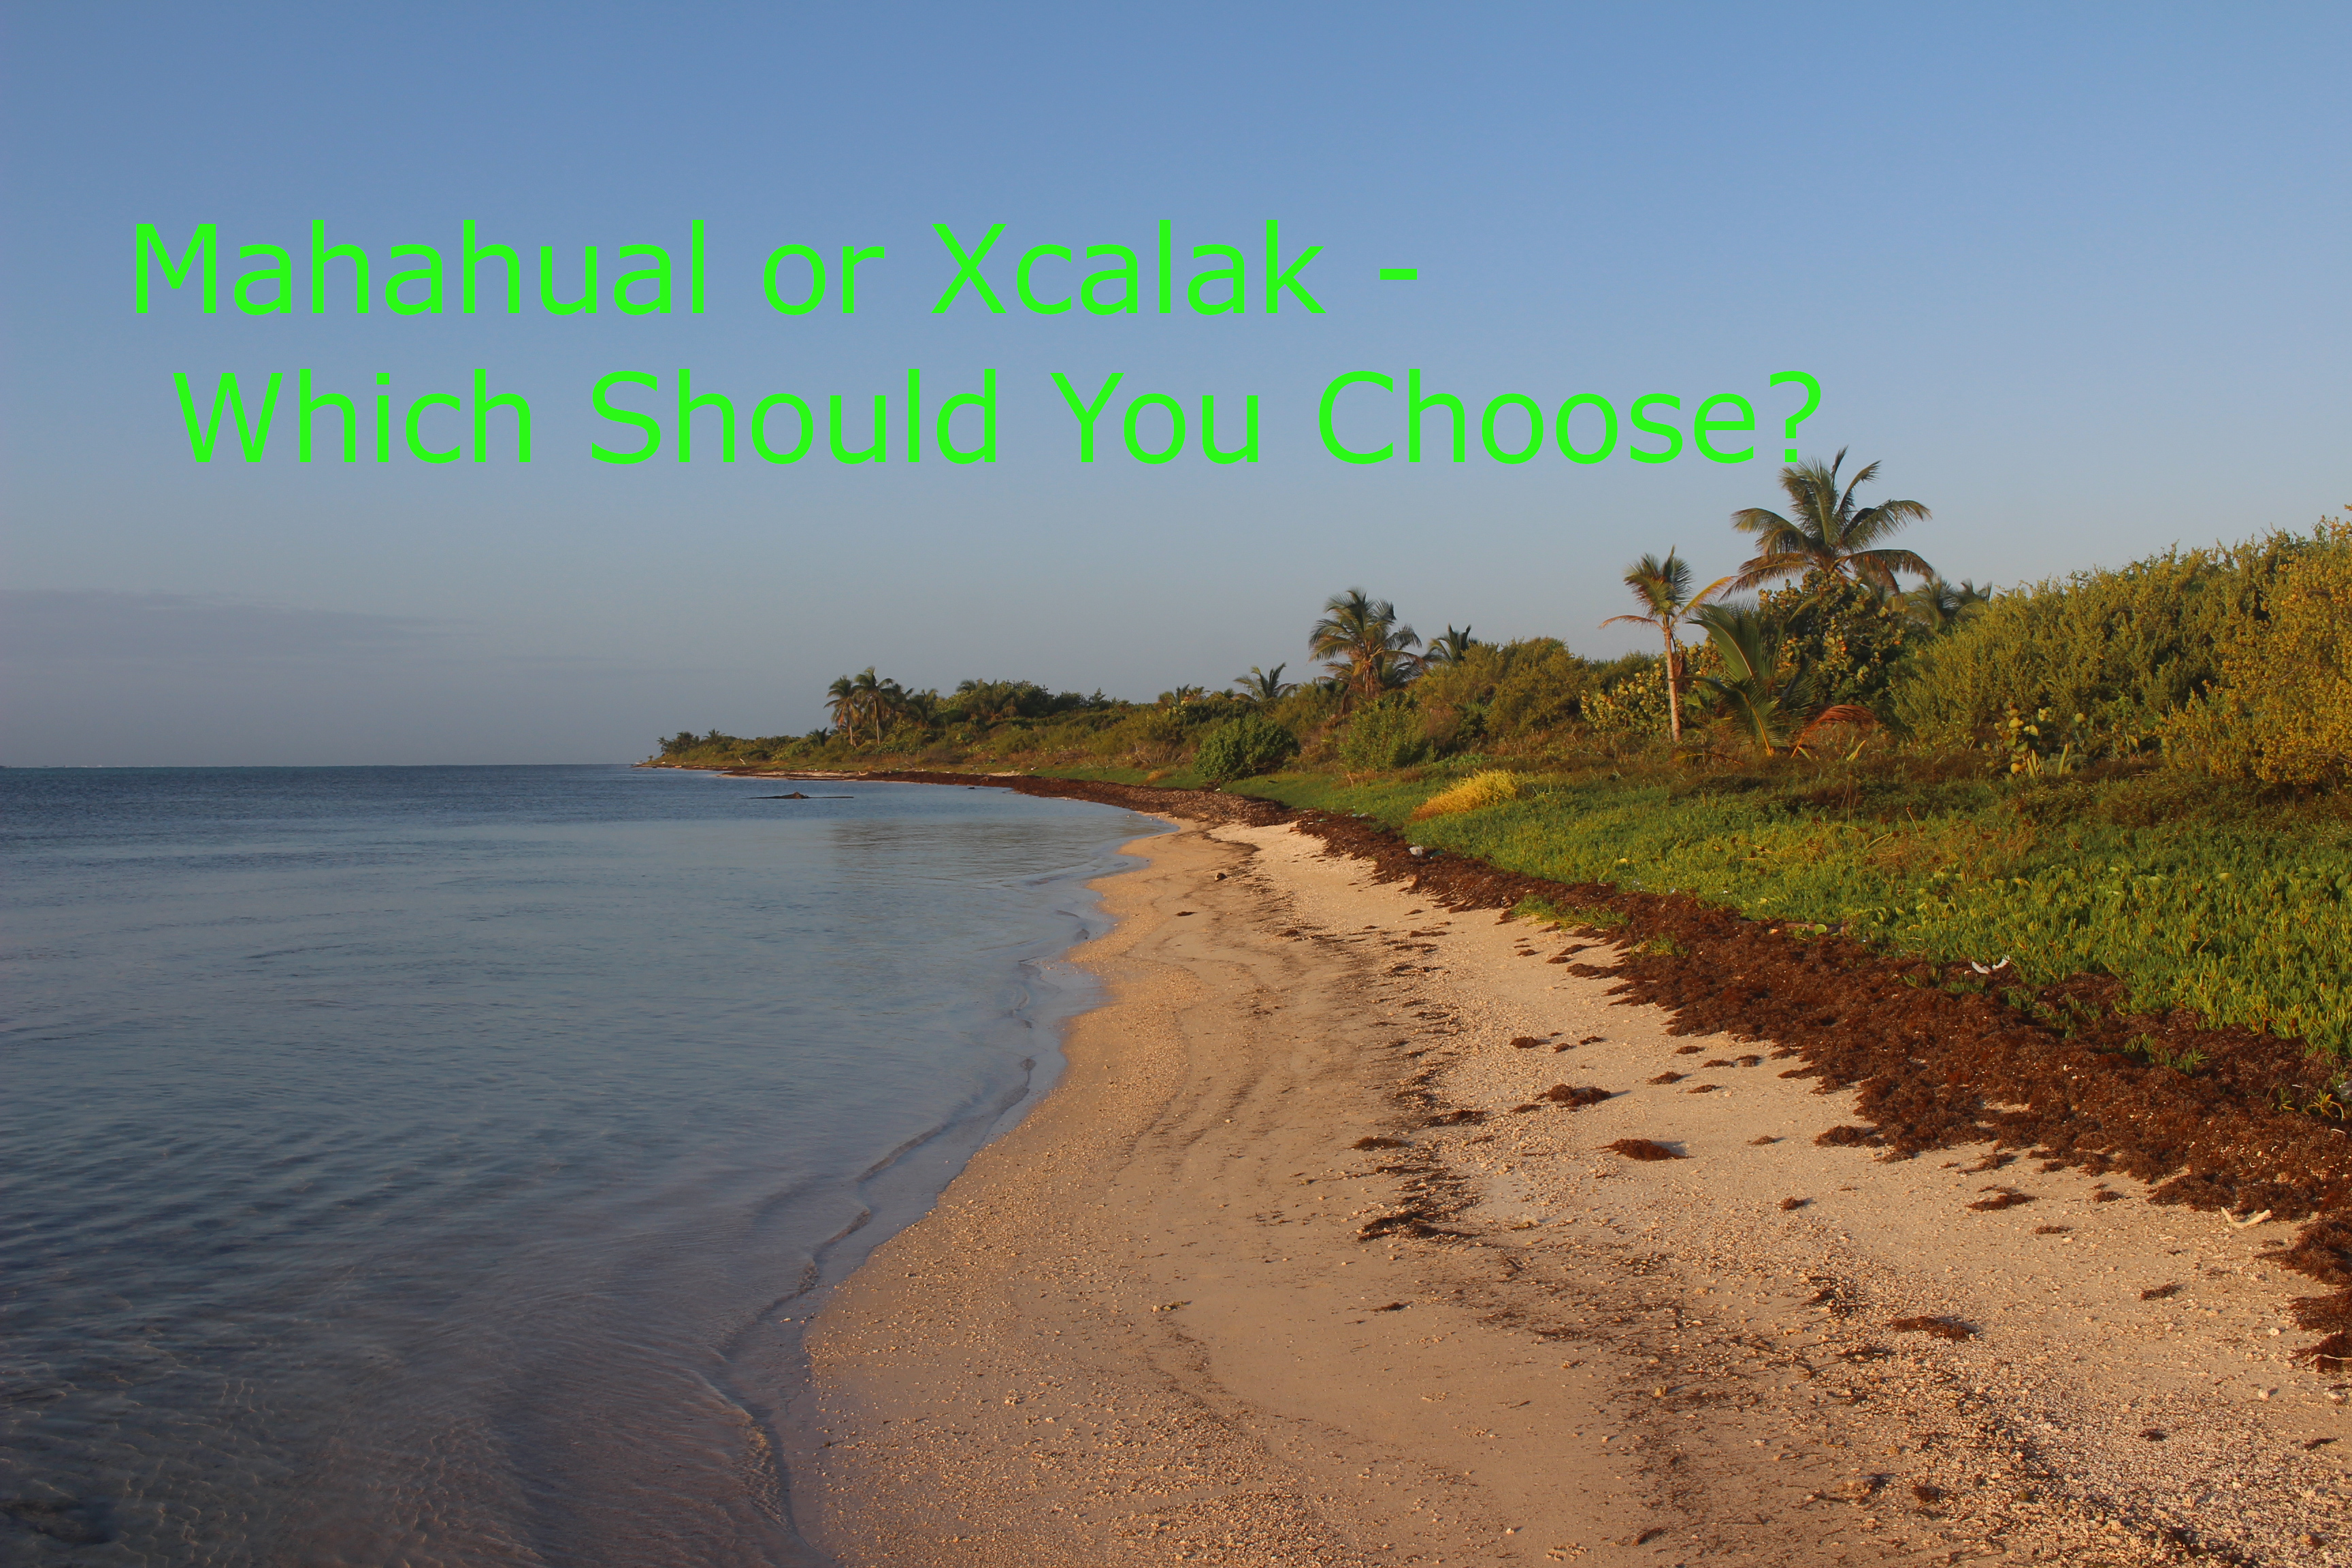 Mahahual or Xcalak - Which Should You Choose featured image (Xcalak beach)